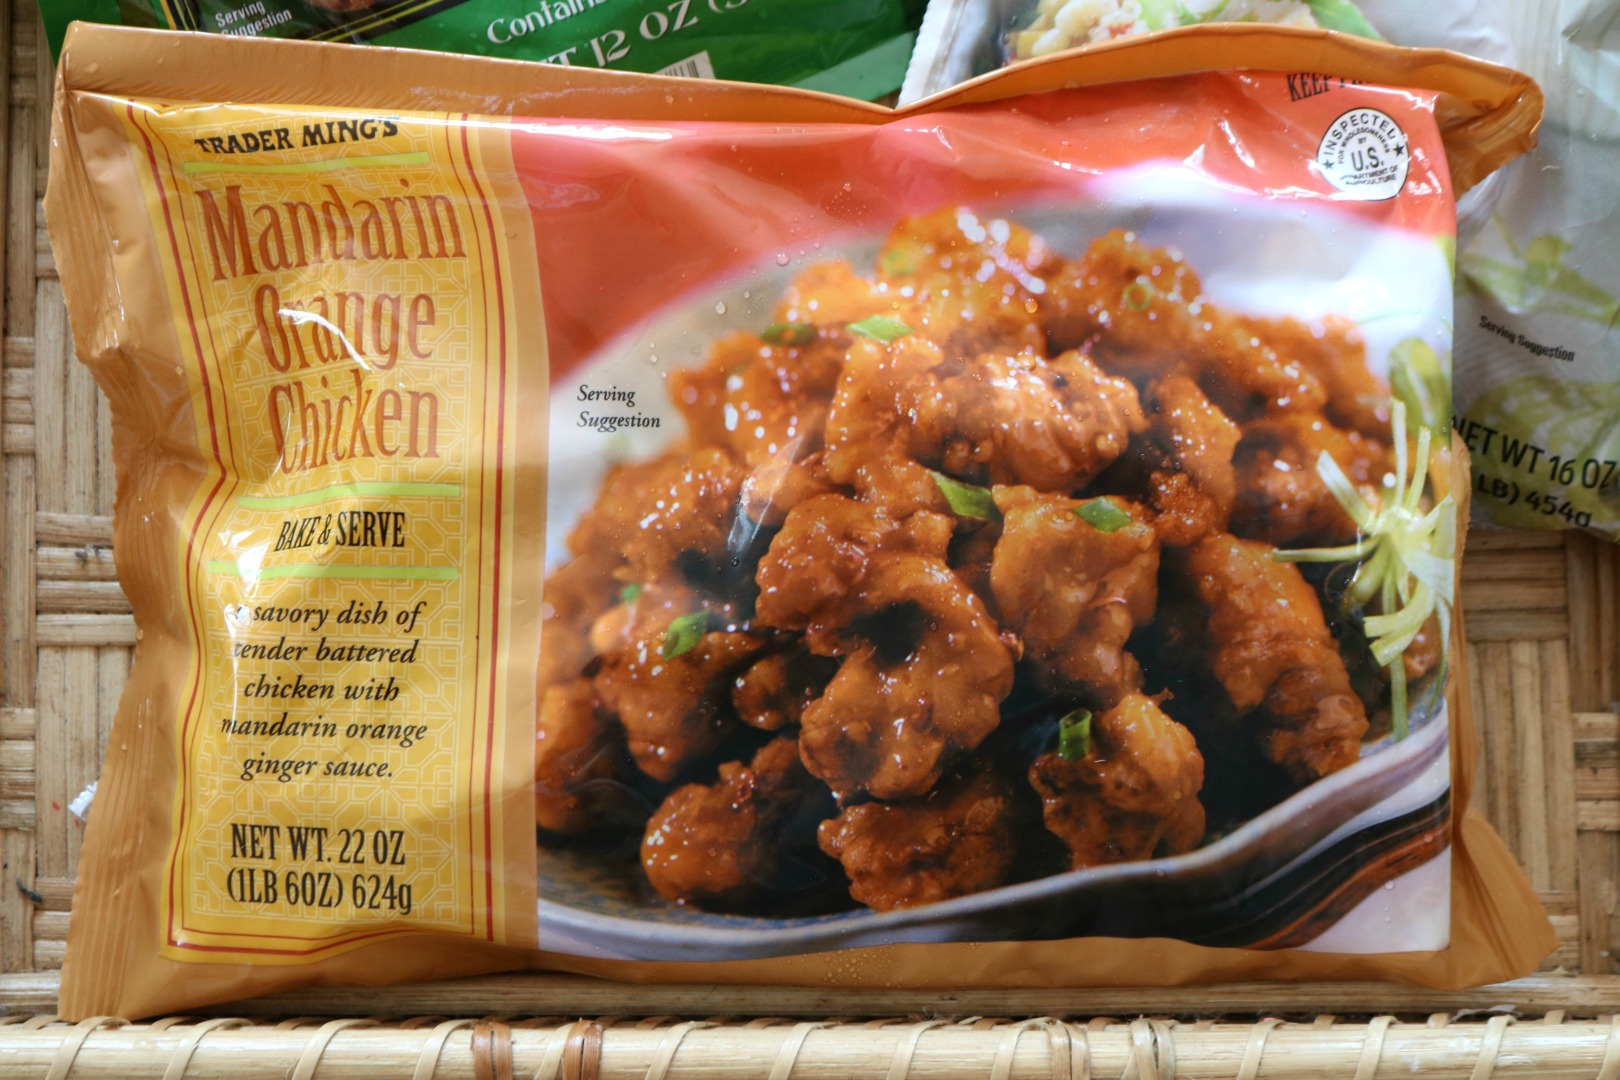 Trader Joe's Shopping List- Top Recommended Items